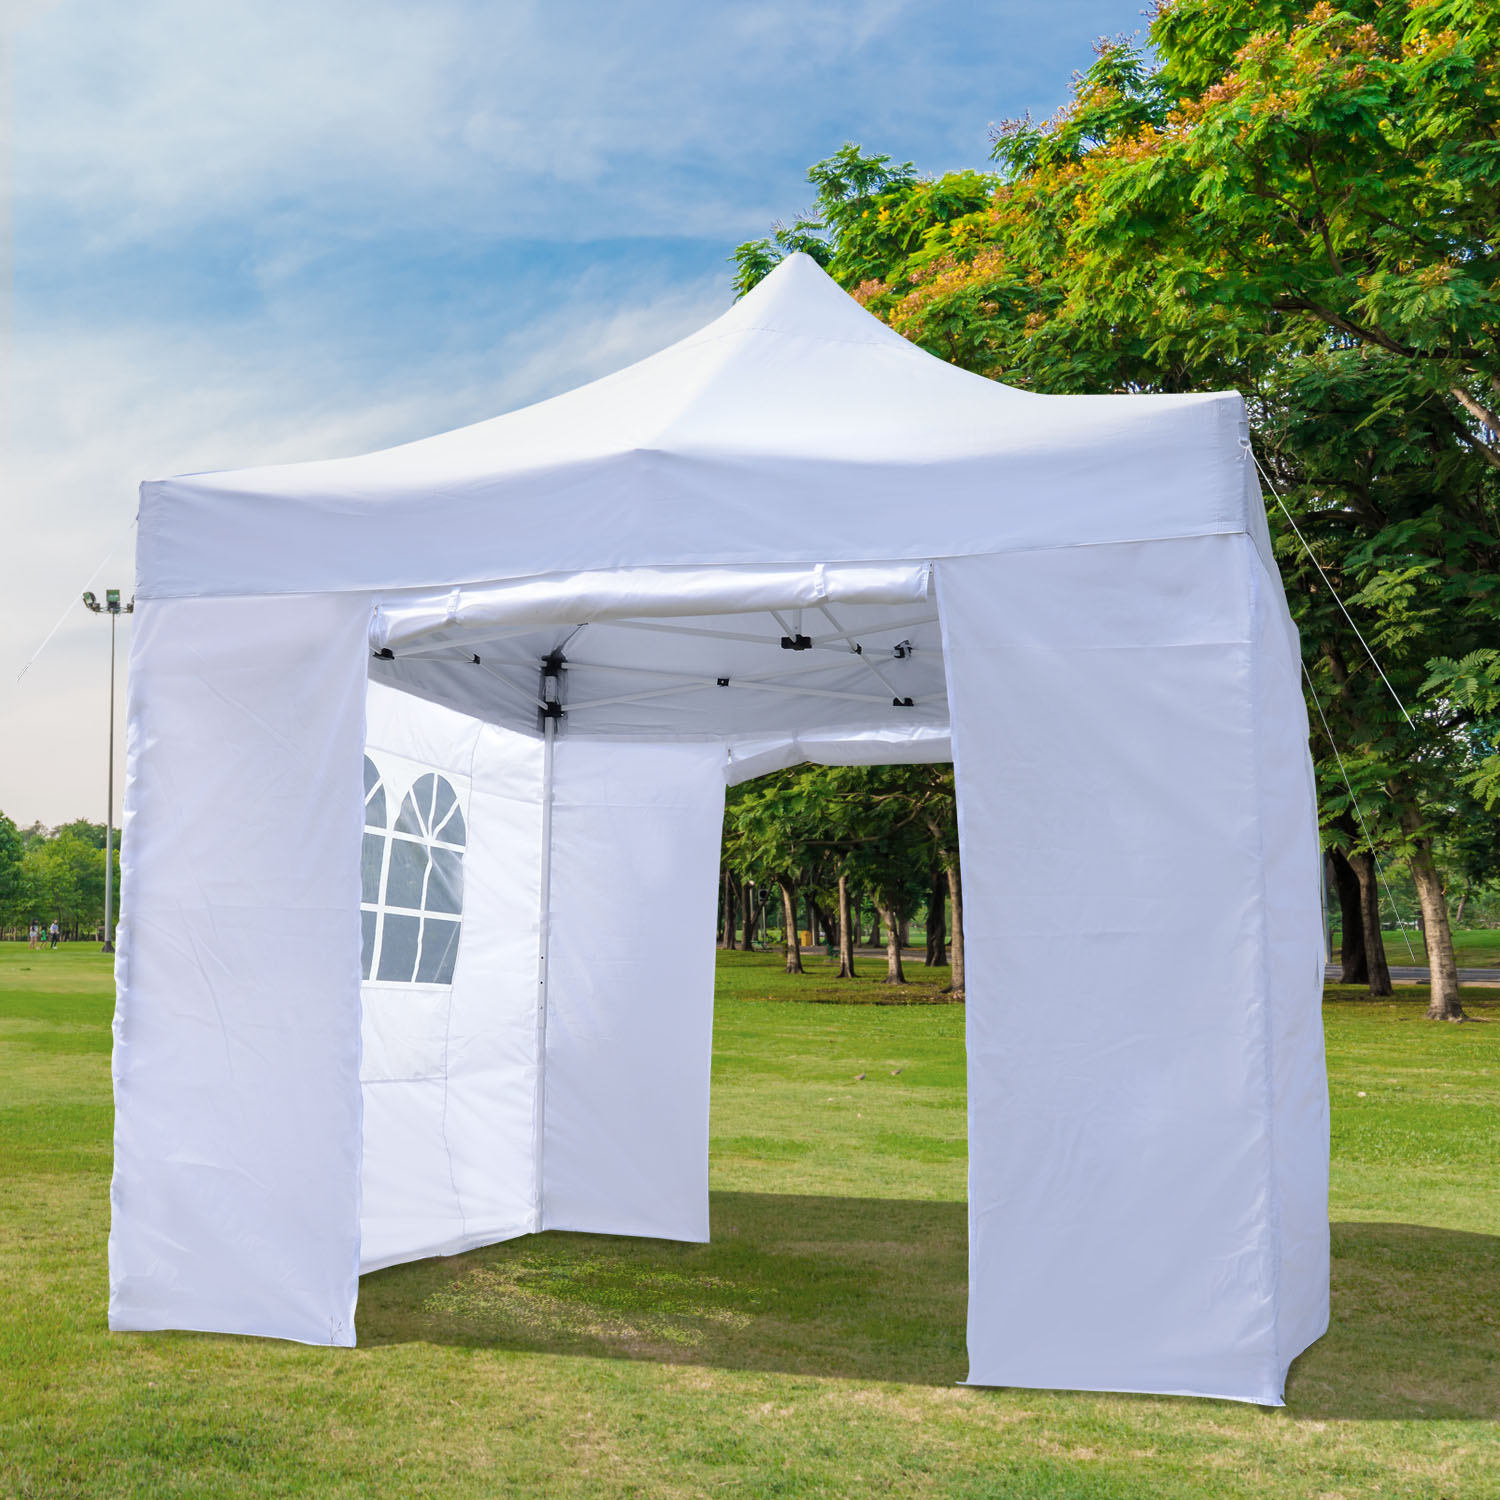 Image of CAD $134.99 Outsunny 9.7x9.7ft Pop Up Party Tent Instant Commercial Gazebo Portable Foldable Outdoor Shelter with 4 Side Panels / Canopy w/ Canada 95509805829